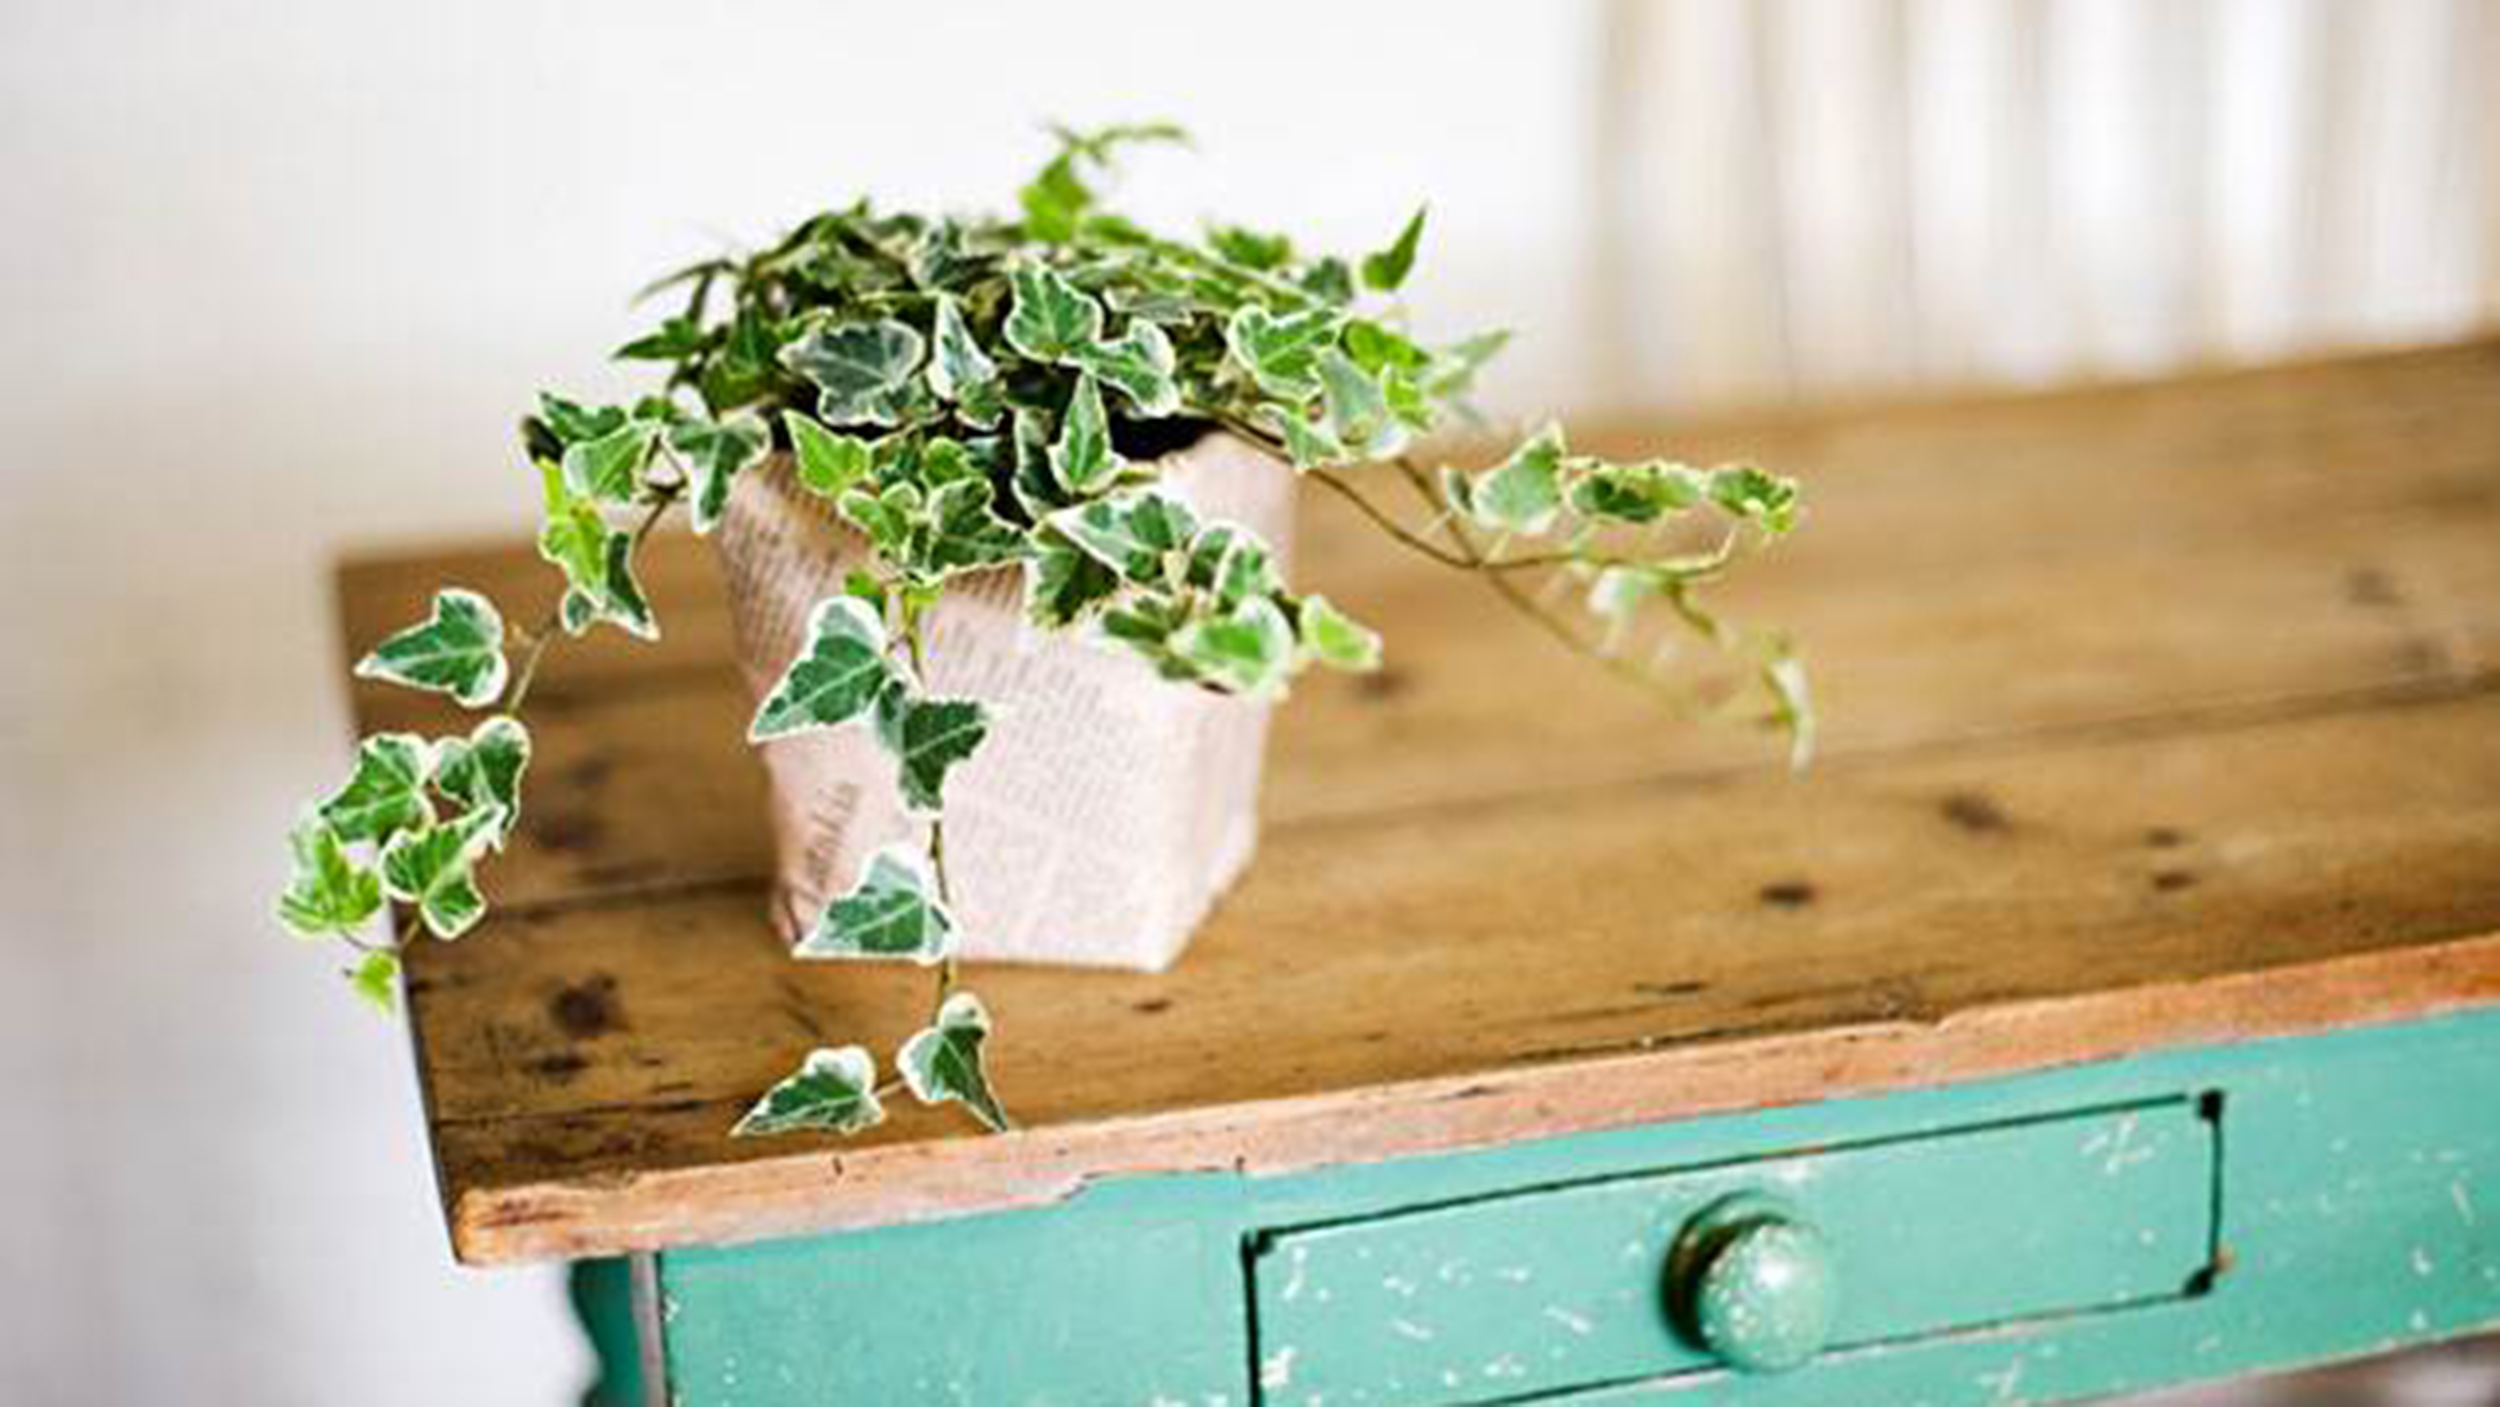 Plant In House The Easiest Indoor House Plants That Won 39t Die On You